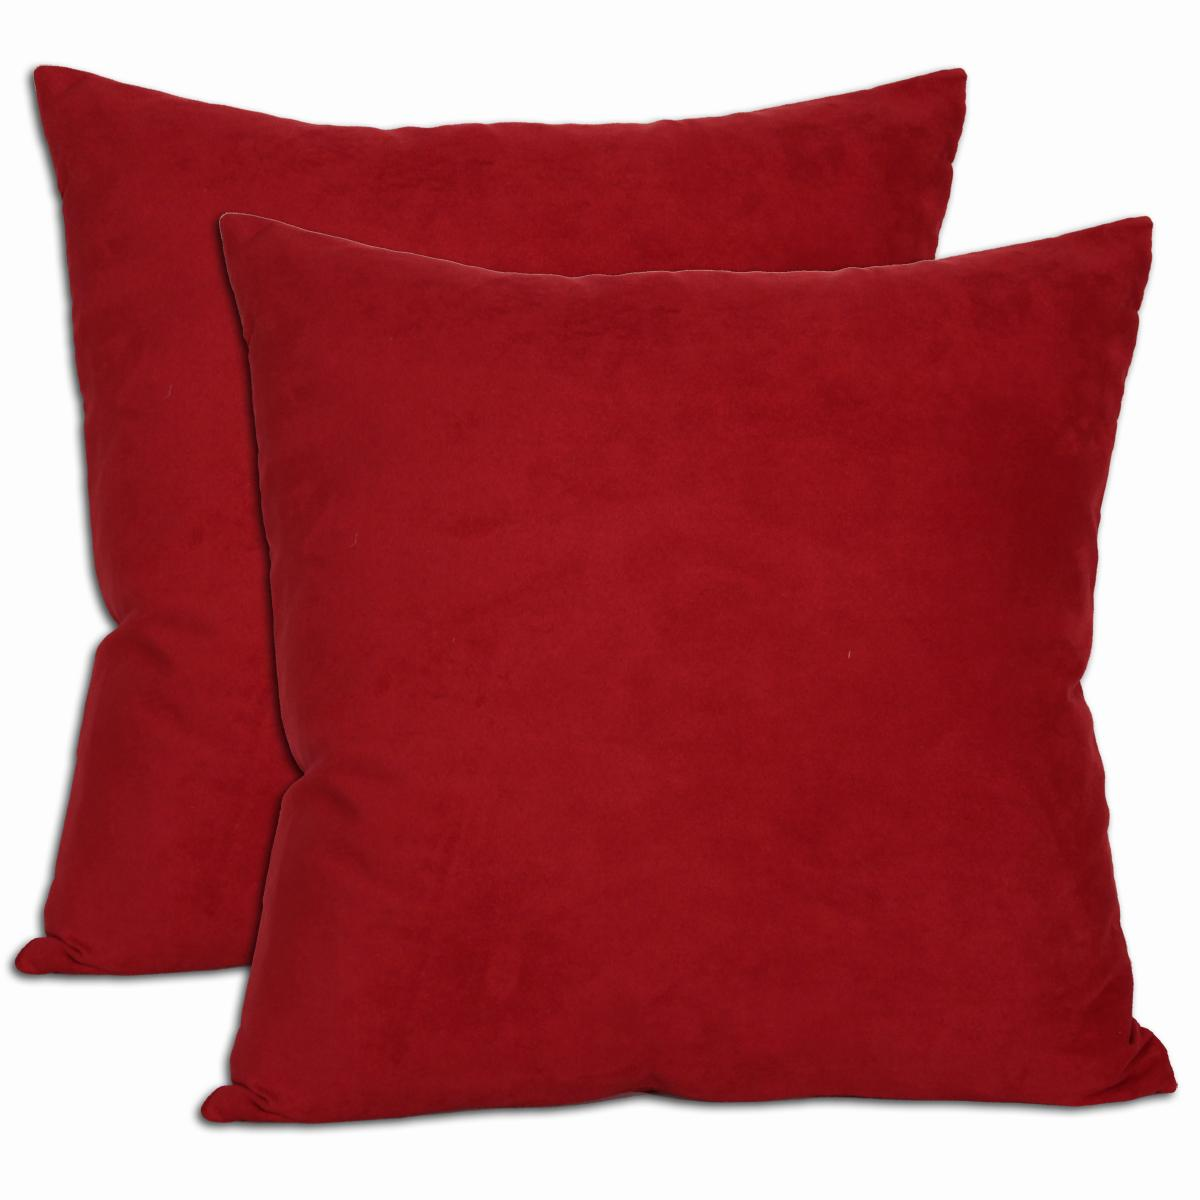 18-inch Red Microsuede Feather and Down Filled Throw Pillows (Set of Two) (Microsuede Decoration Throw Pillow - Red (Set of Two))